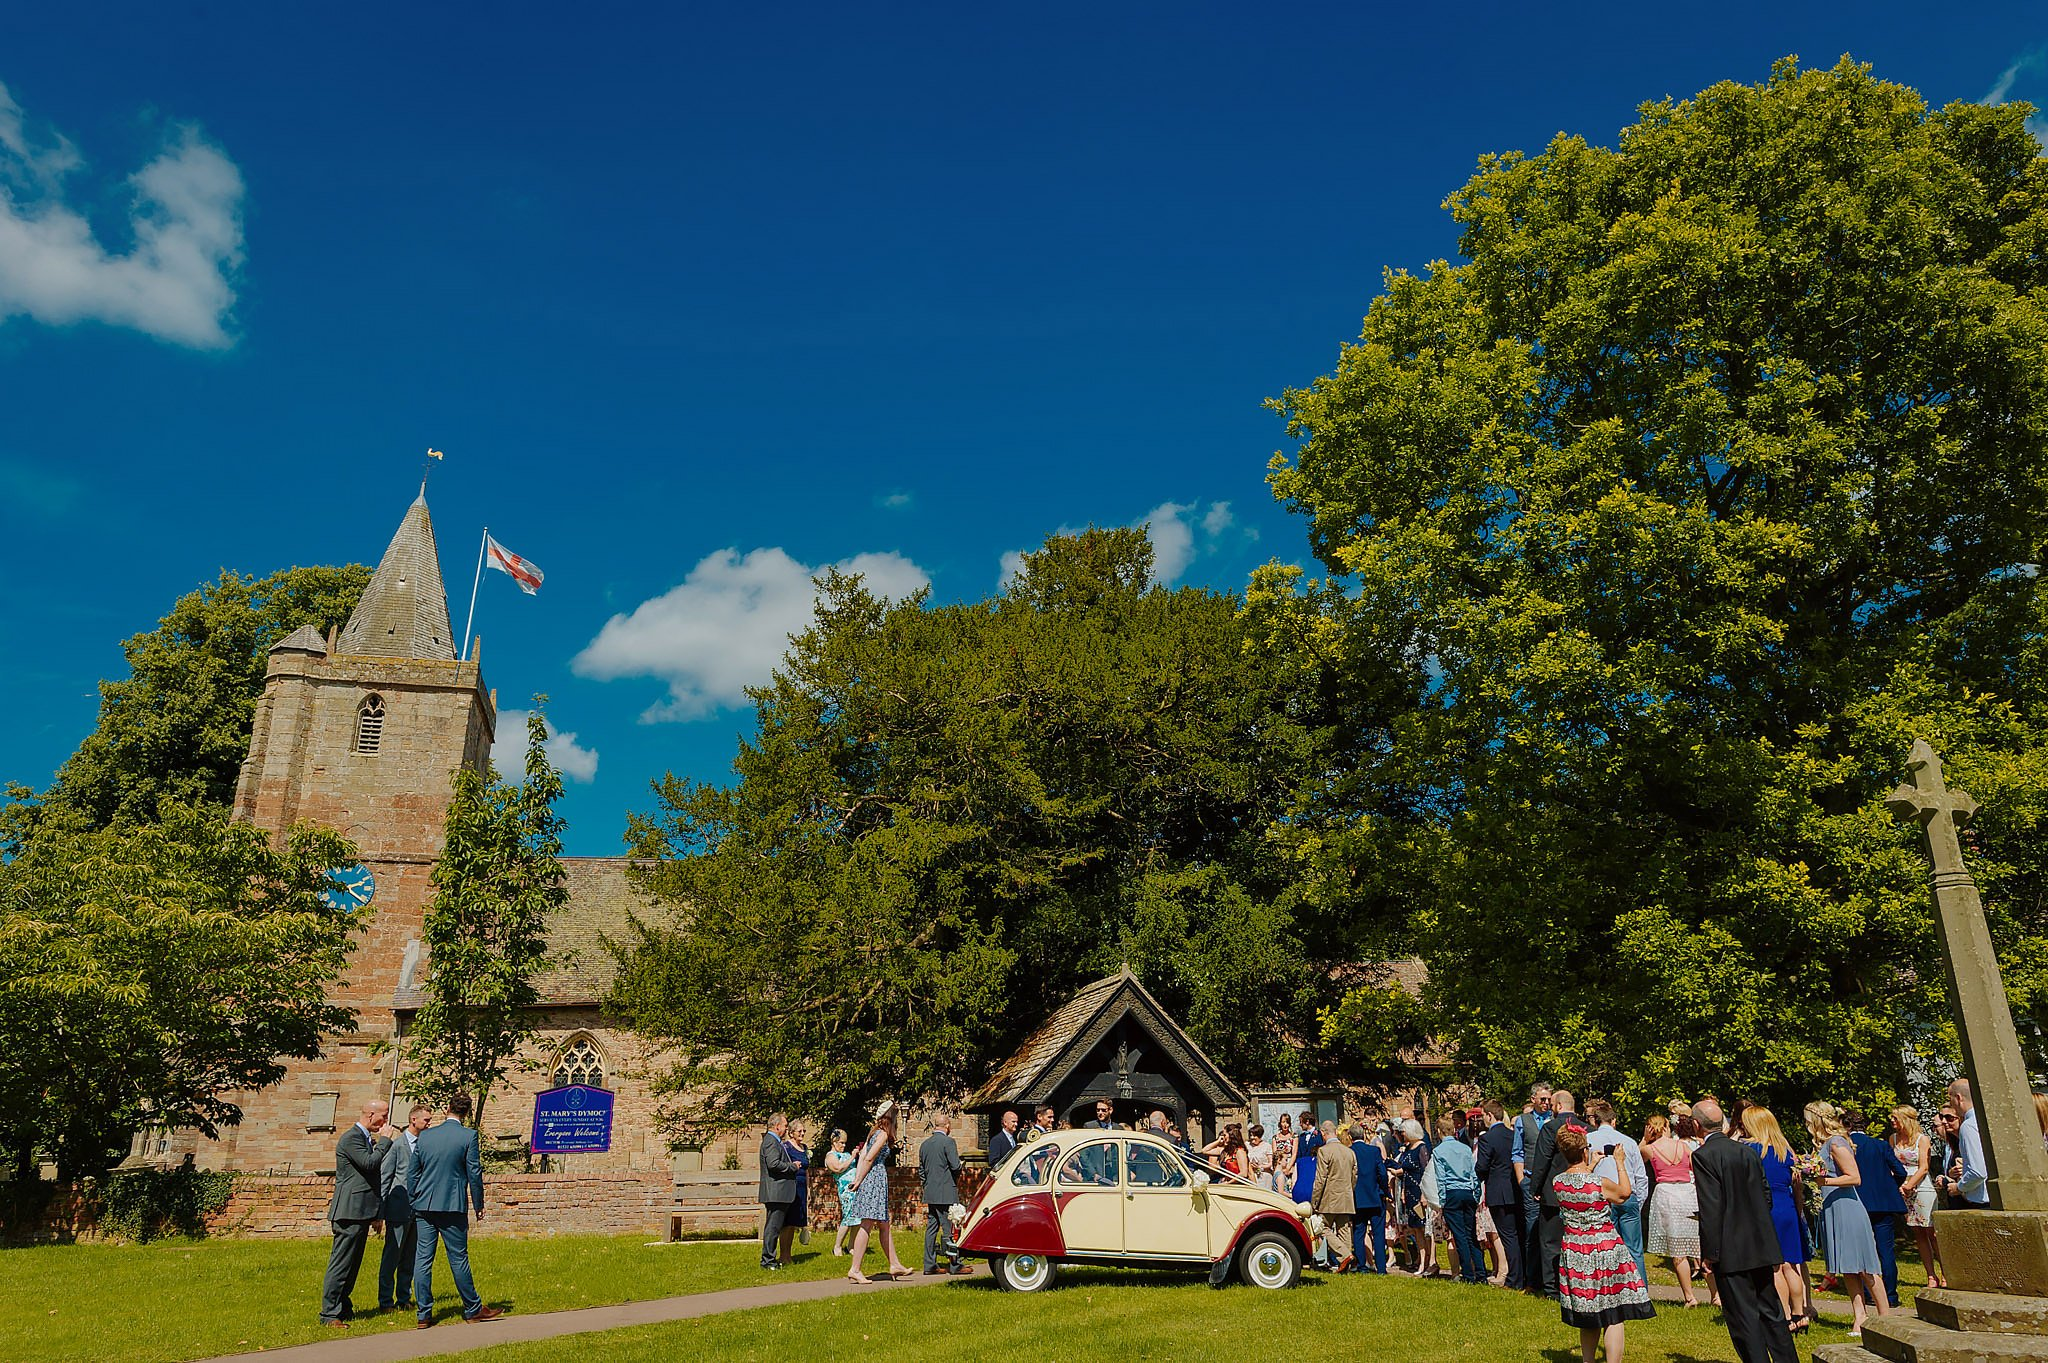 Wedding photography at Hellens Manor in Herefordshire, West Midlands | Shelley + Ian 36